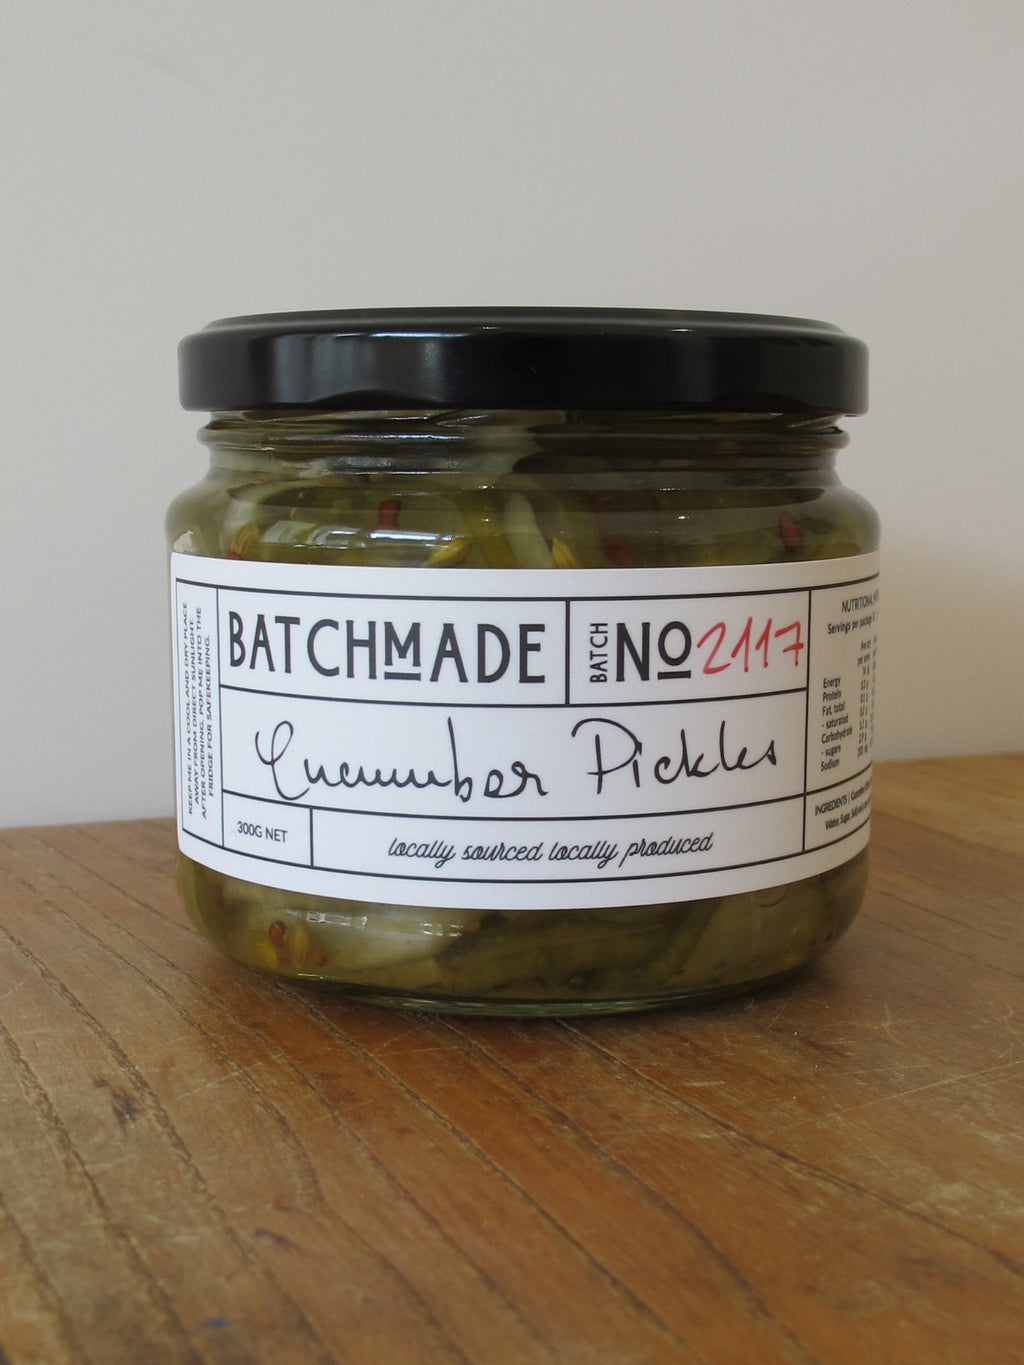 Cucumber pickles jar